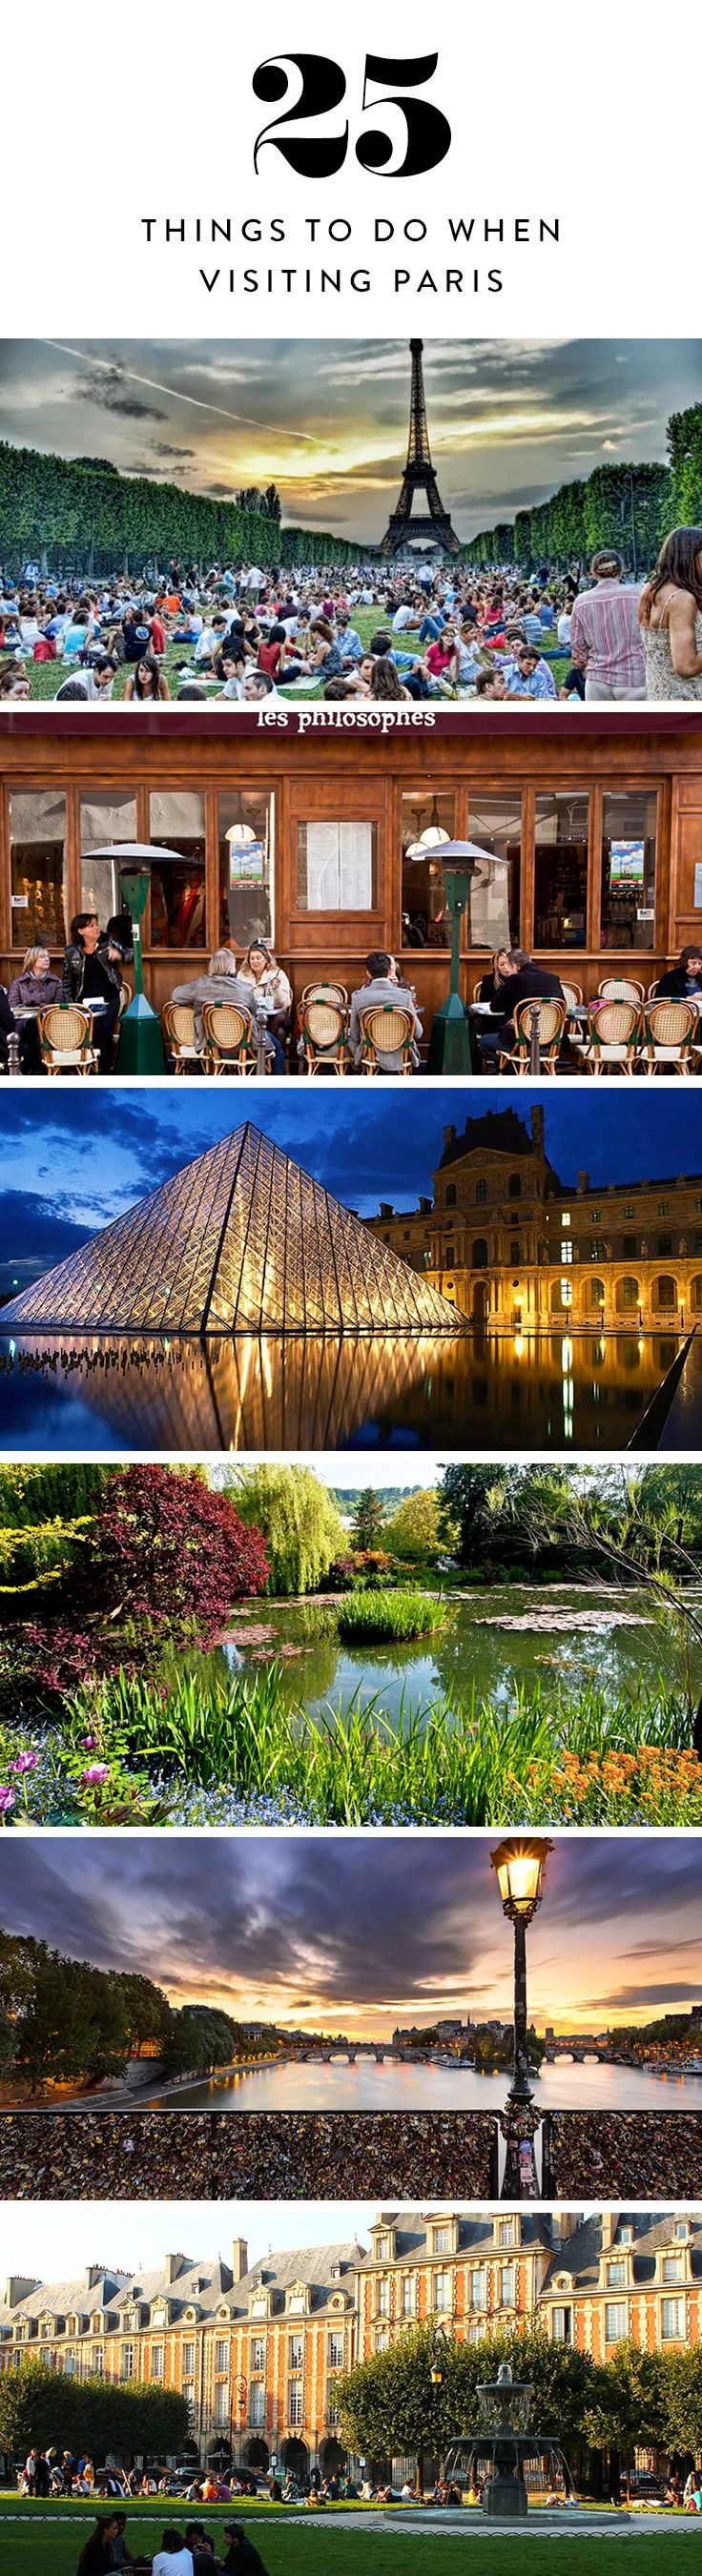 From the food to the culture to the fashion, there so many activities to fit in over the course of a few days in Paris. Here's how to get the most out of your time in the City of Light.